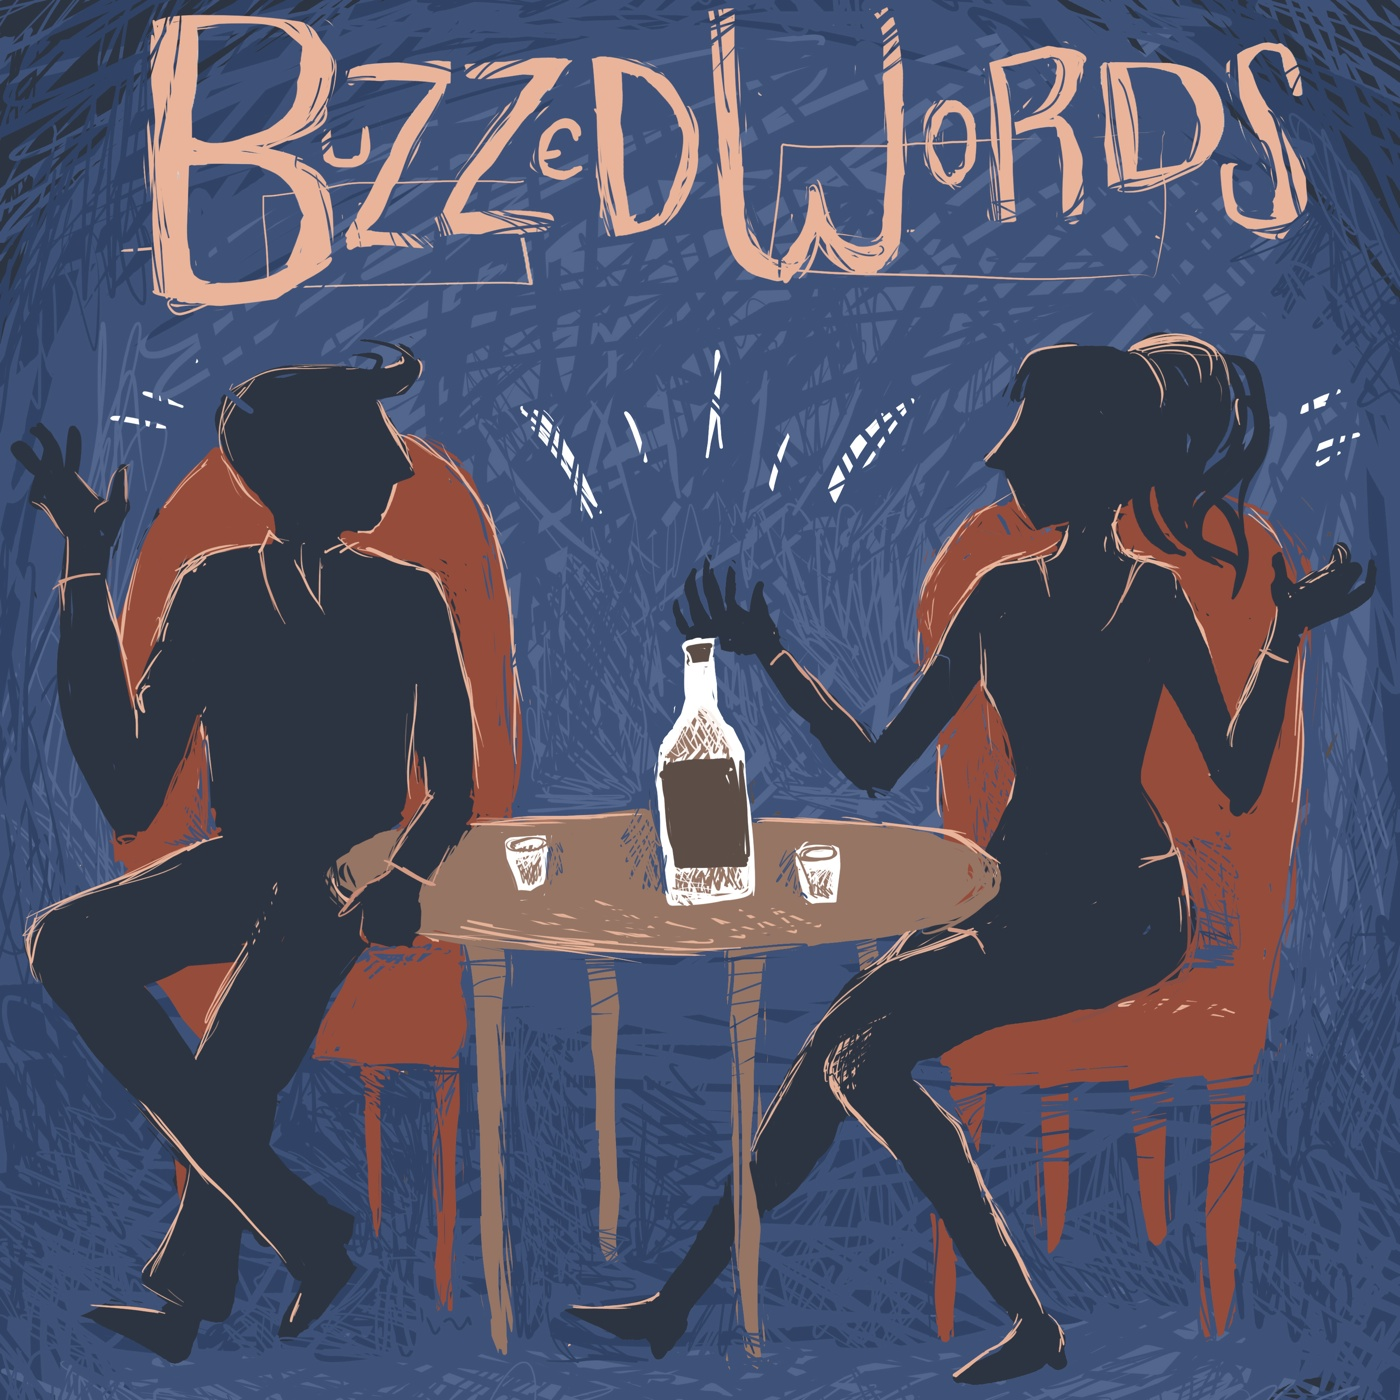 Buzzedwords